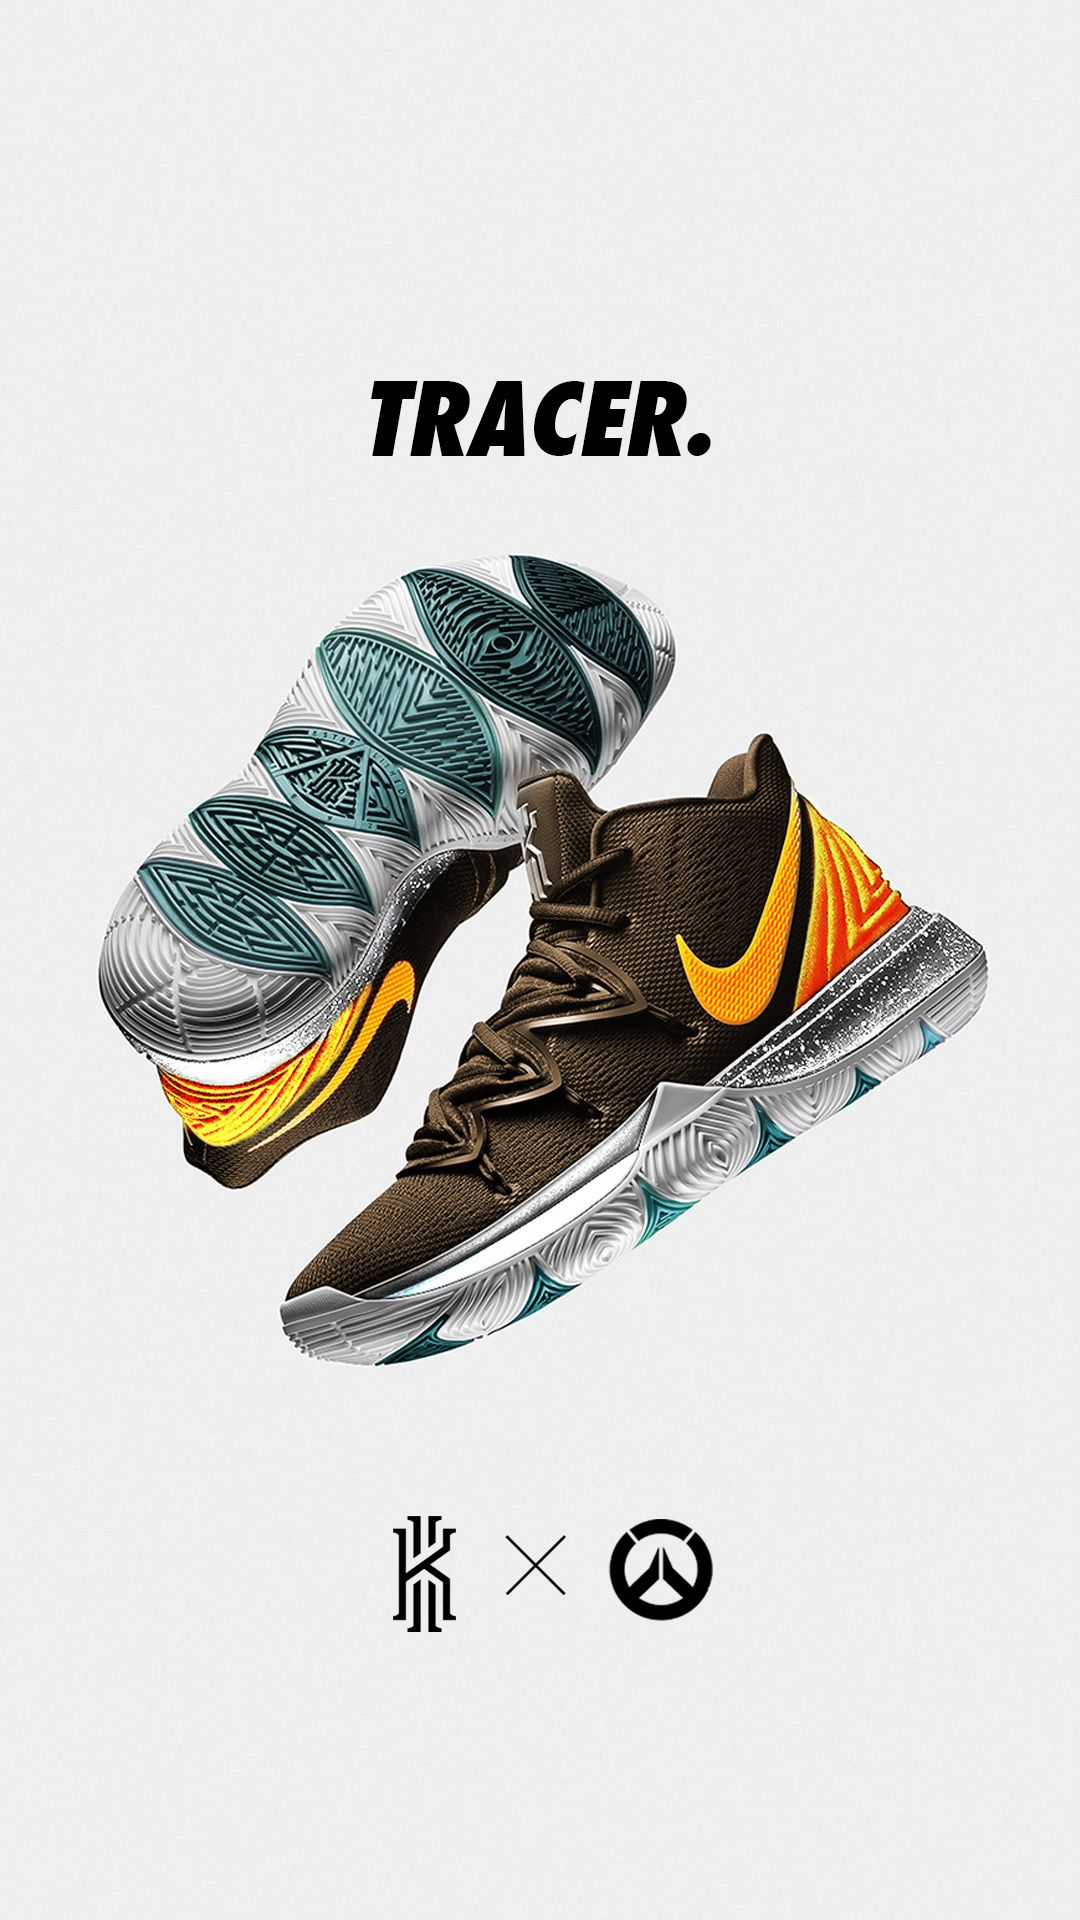 6a3b084057a0 Nike Kyrie 5 X Overwatch Concepts on Behance